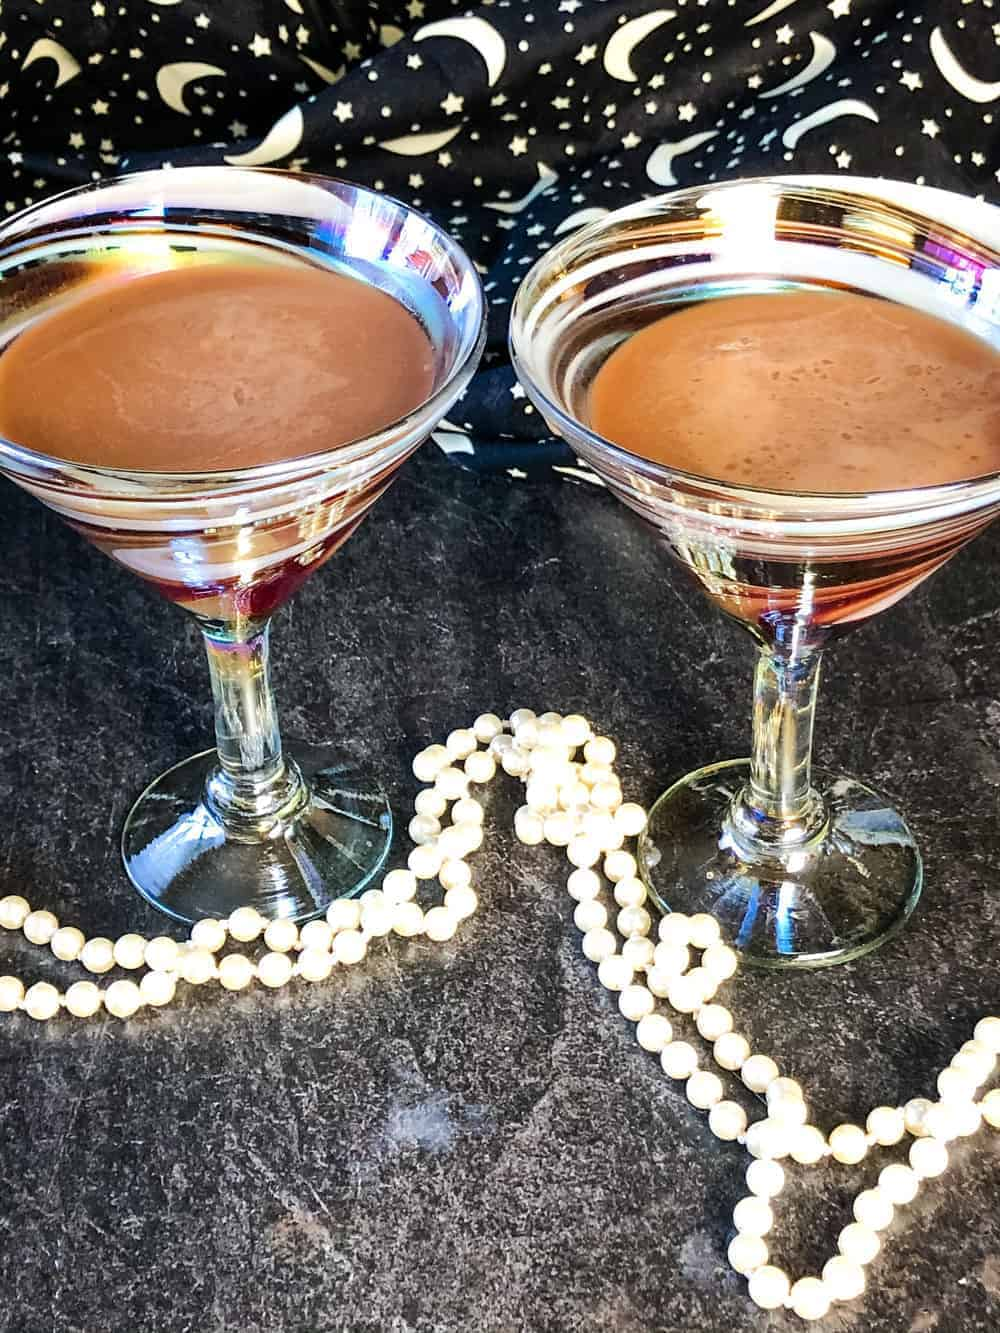 Two elegant martini glasses filled with chocolate martinis made with vegan chocolate liqueur with stars and moon backdrop and white beads in forefront